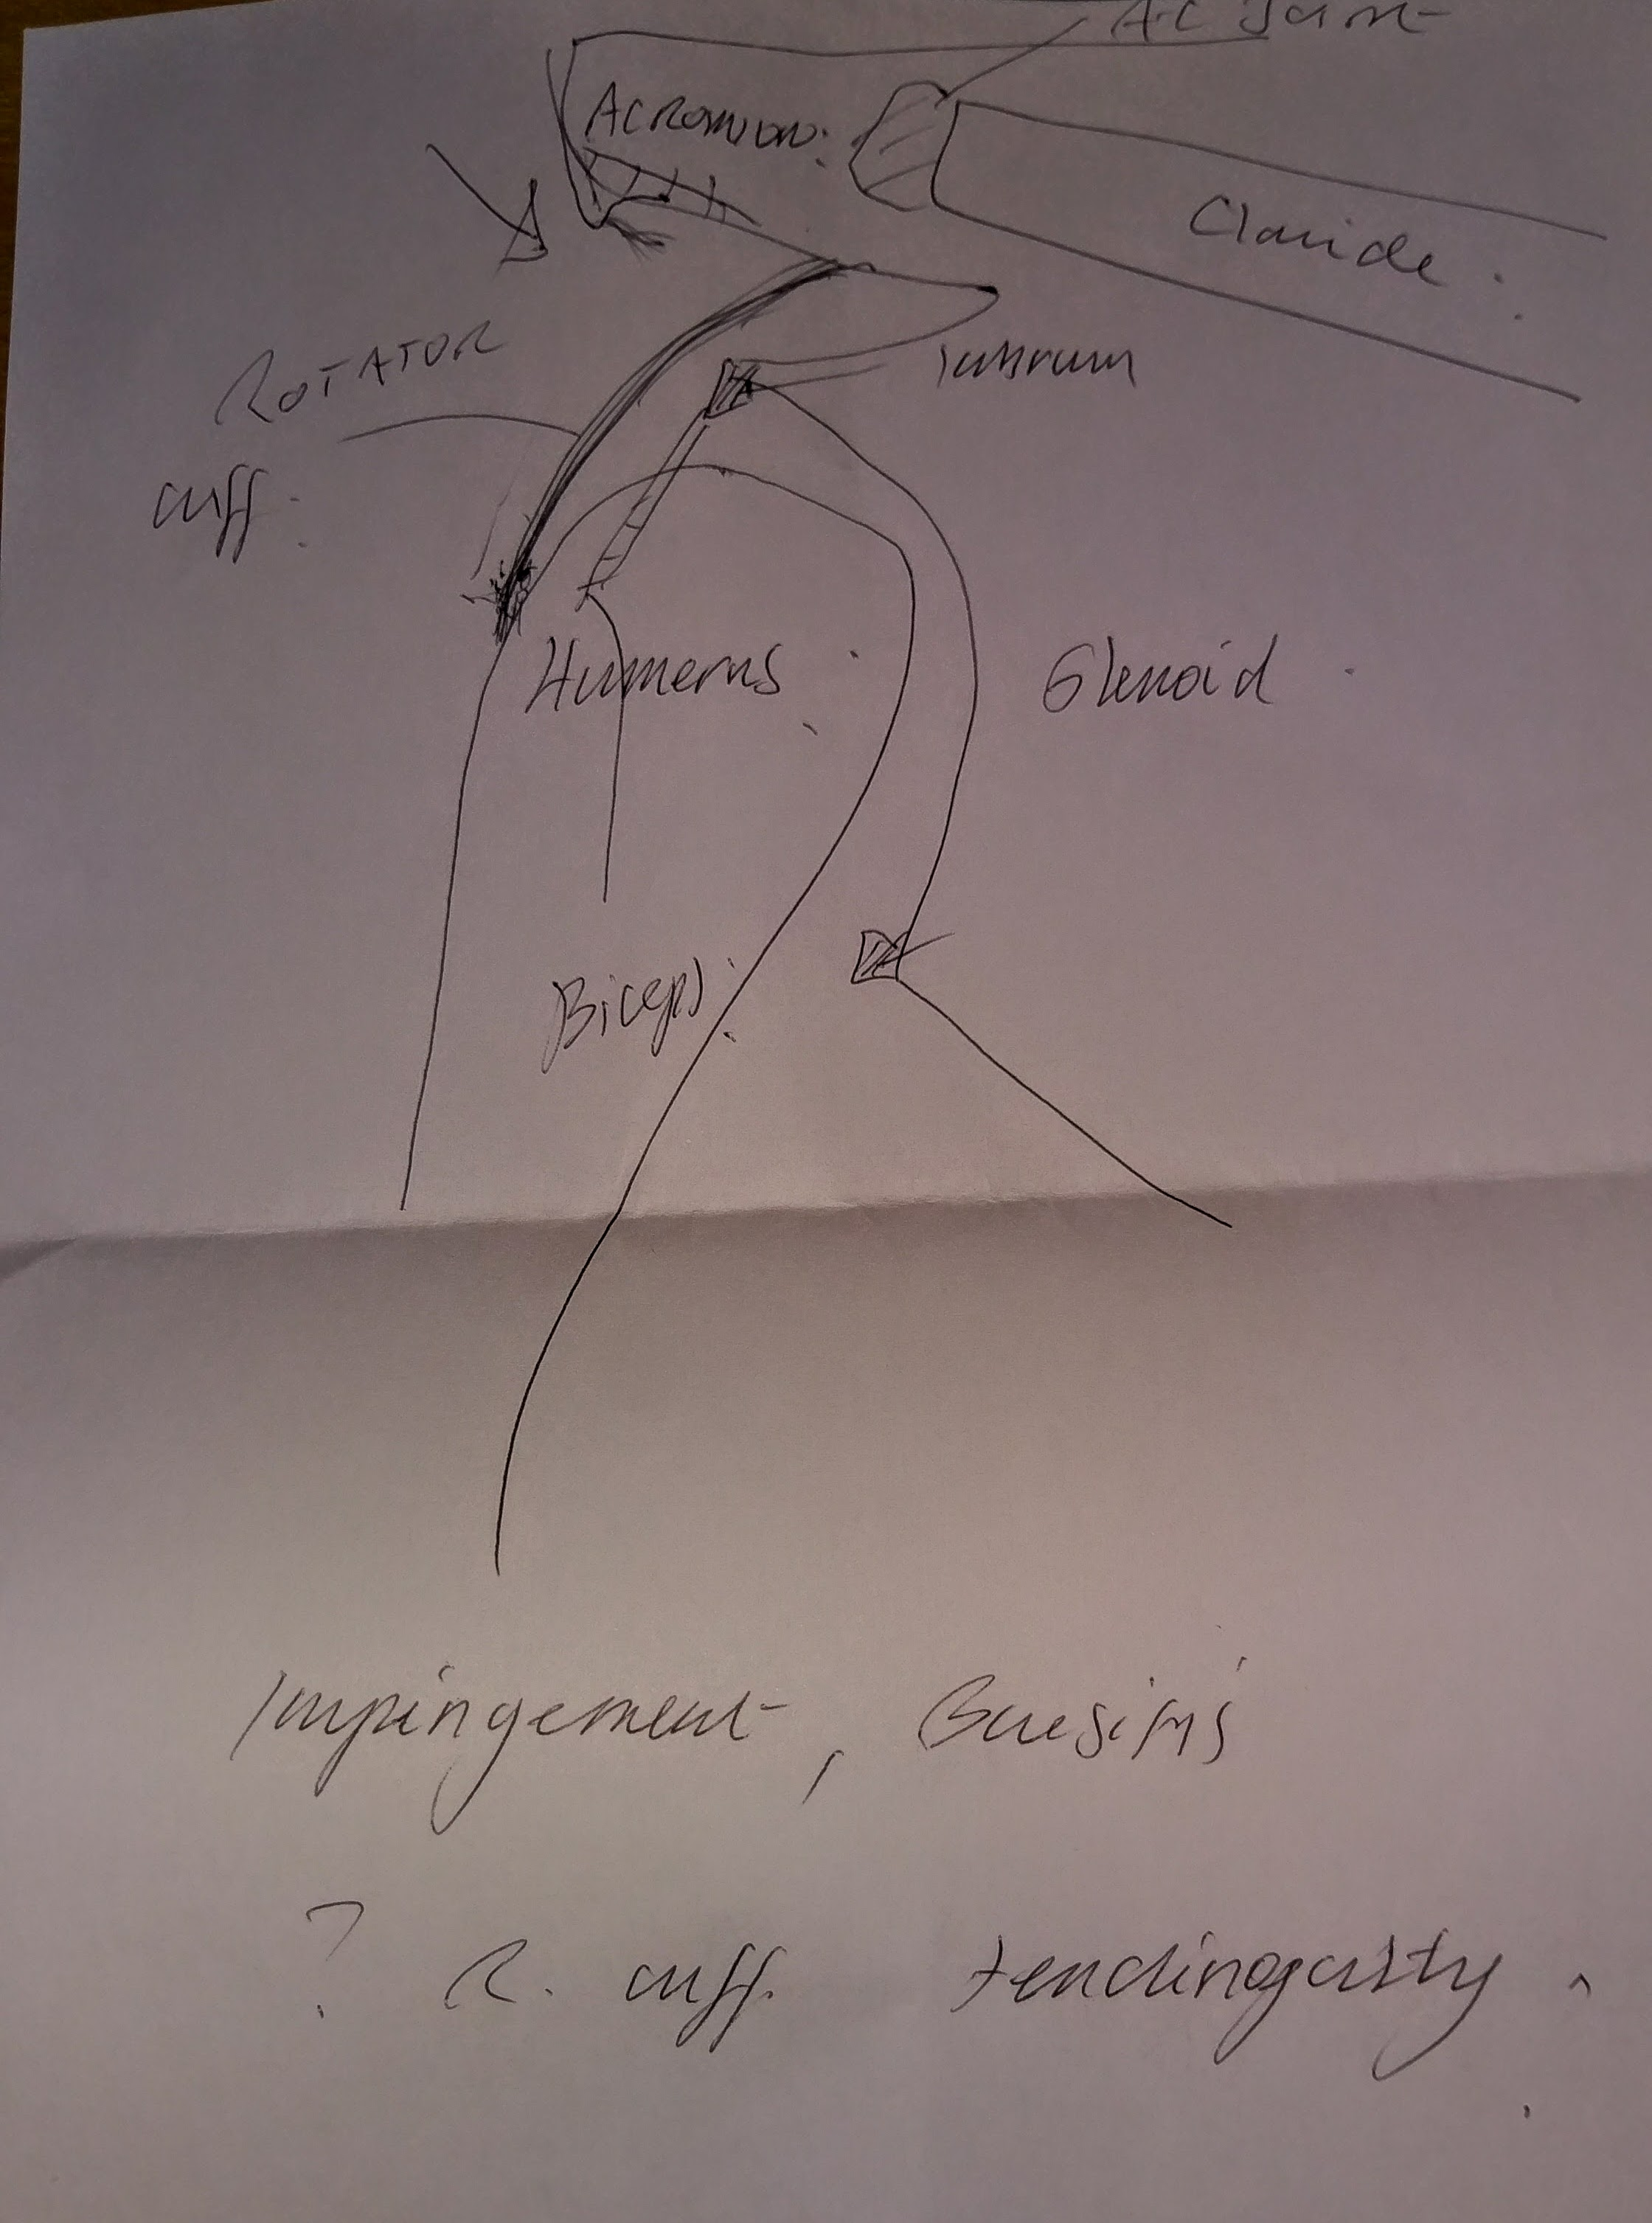 Impingement, bursitis, rotator cuff tendinopathy as drawn by the specialist.